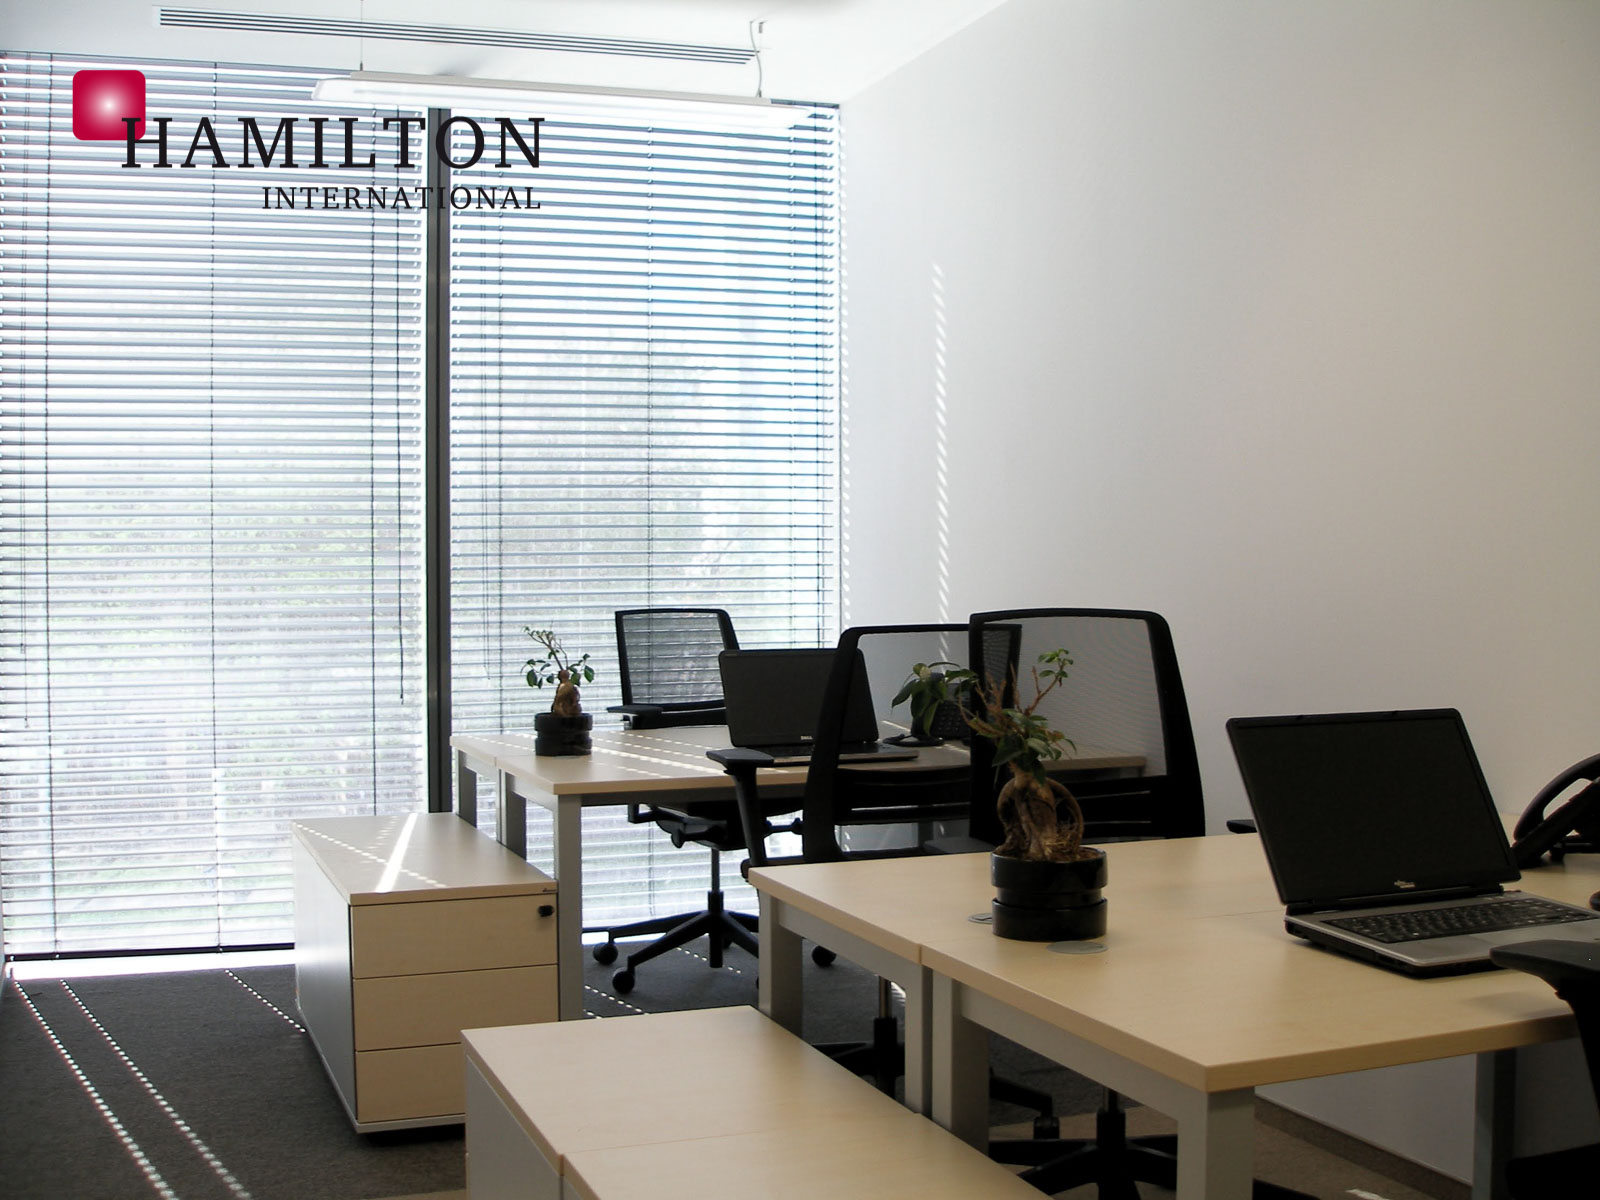 Omni Office Q22 Warszawa serviced office building photo